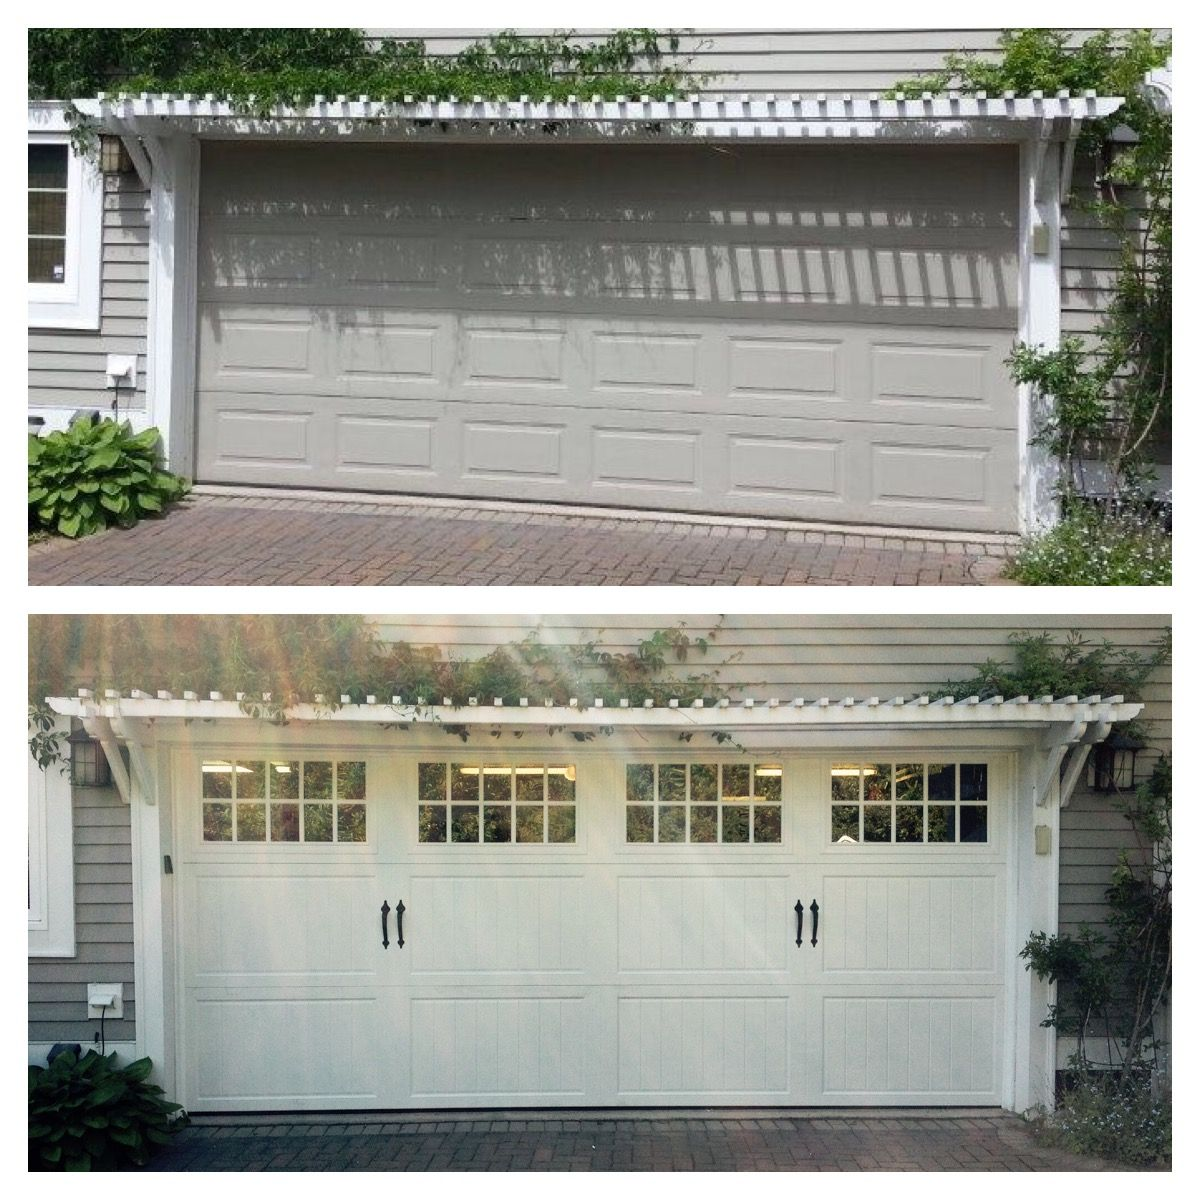 Classica northampton garage door white 9 x 8 no windows - Amarr Classica Collection Cortona Panel In Woodgrain Walnut Madeira Windows Before And After Pinterest Garage Doors Door Design And Garage Door